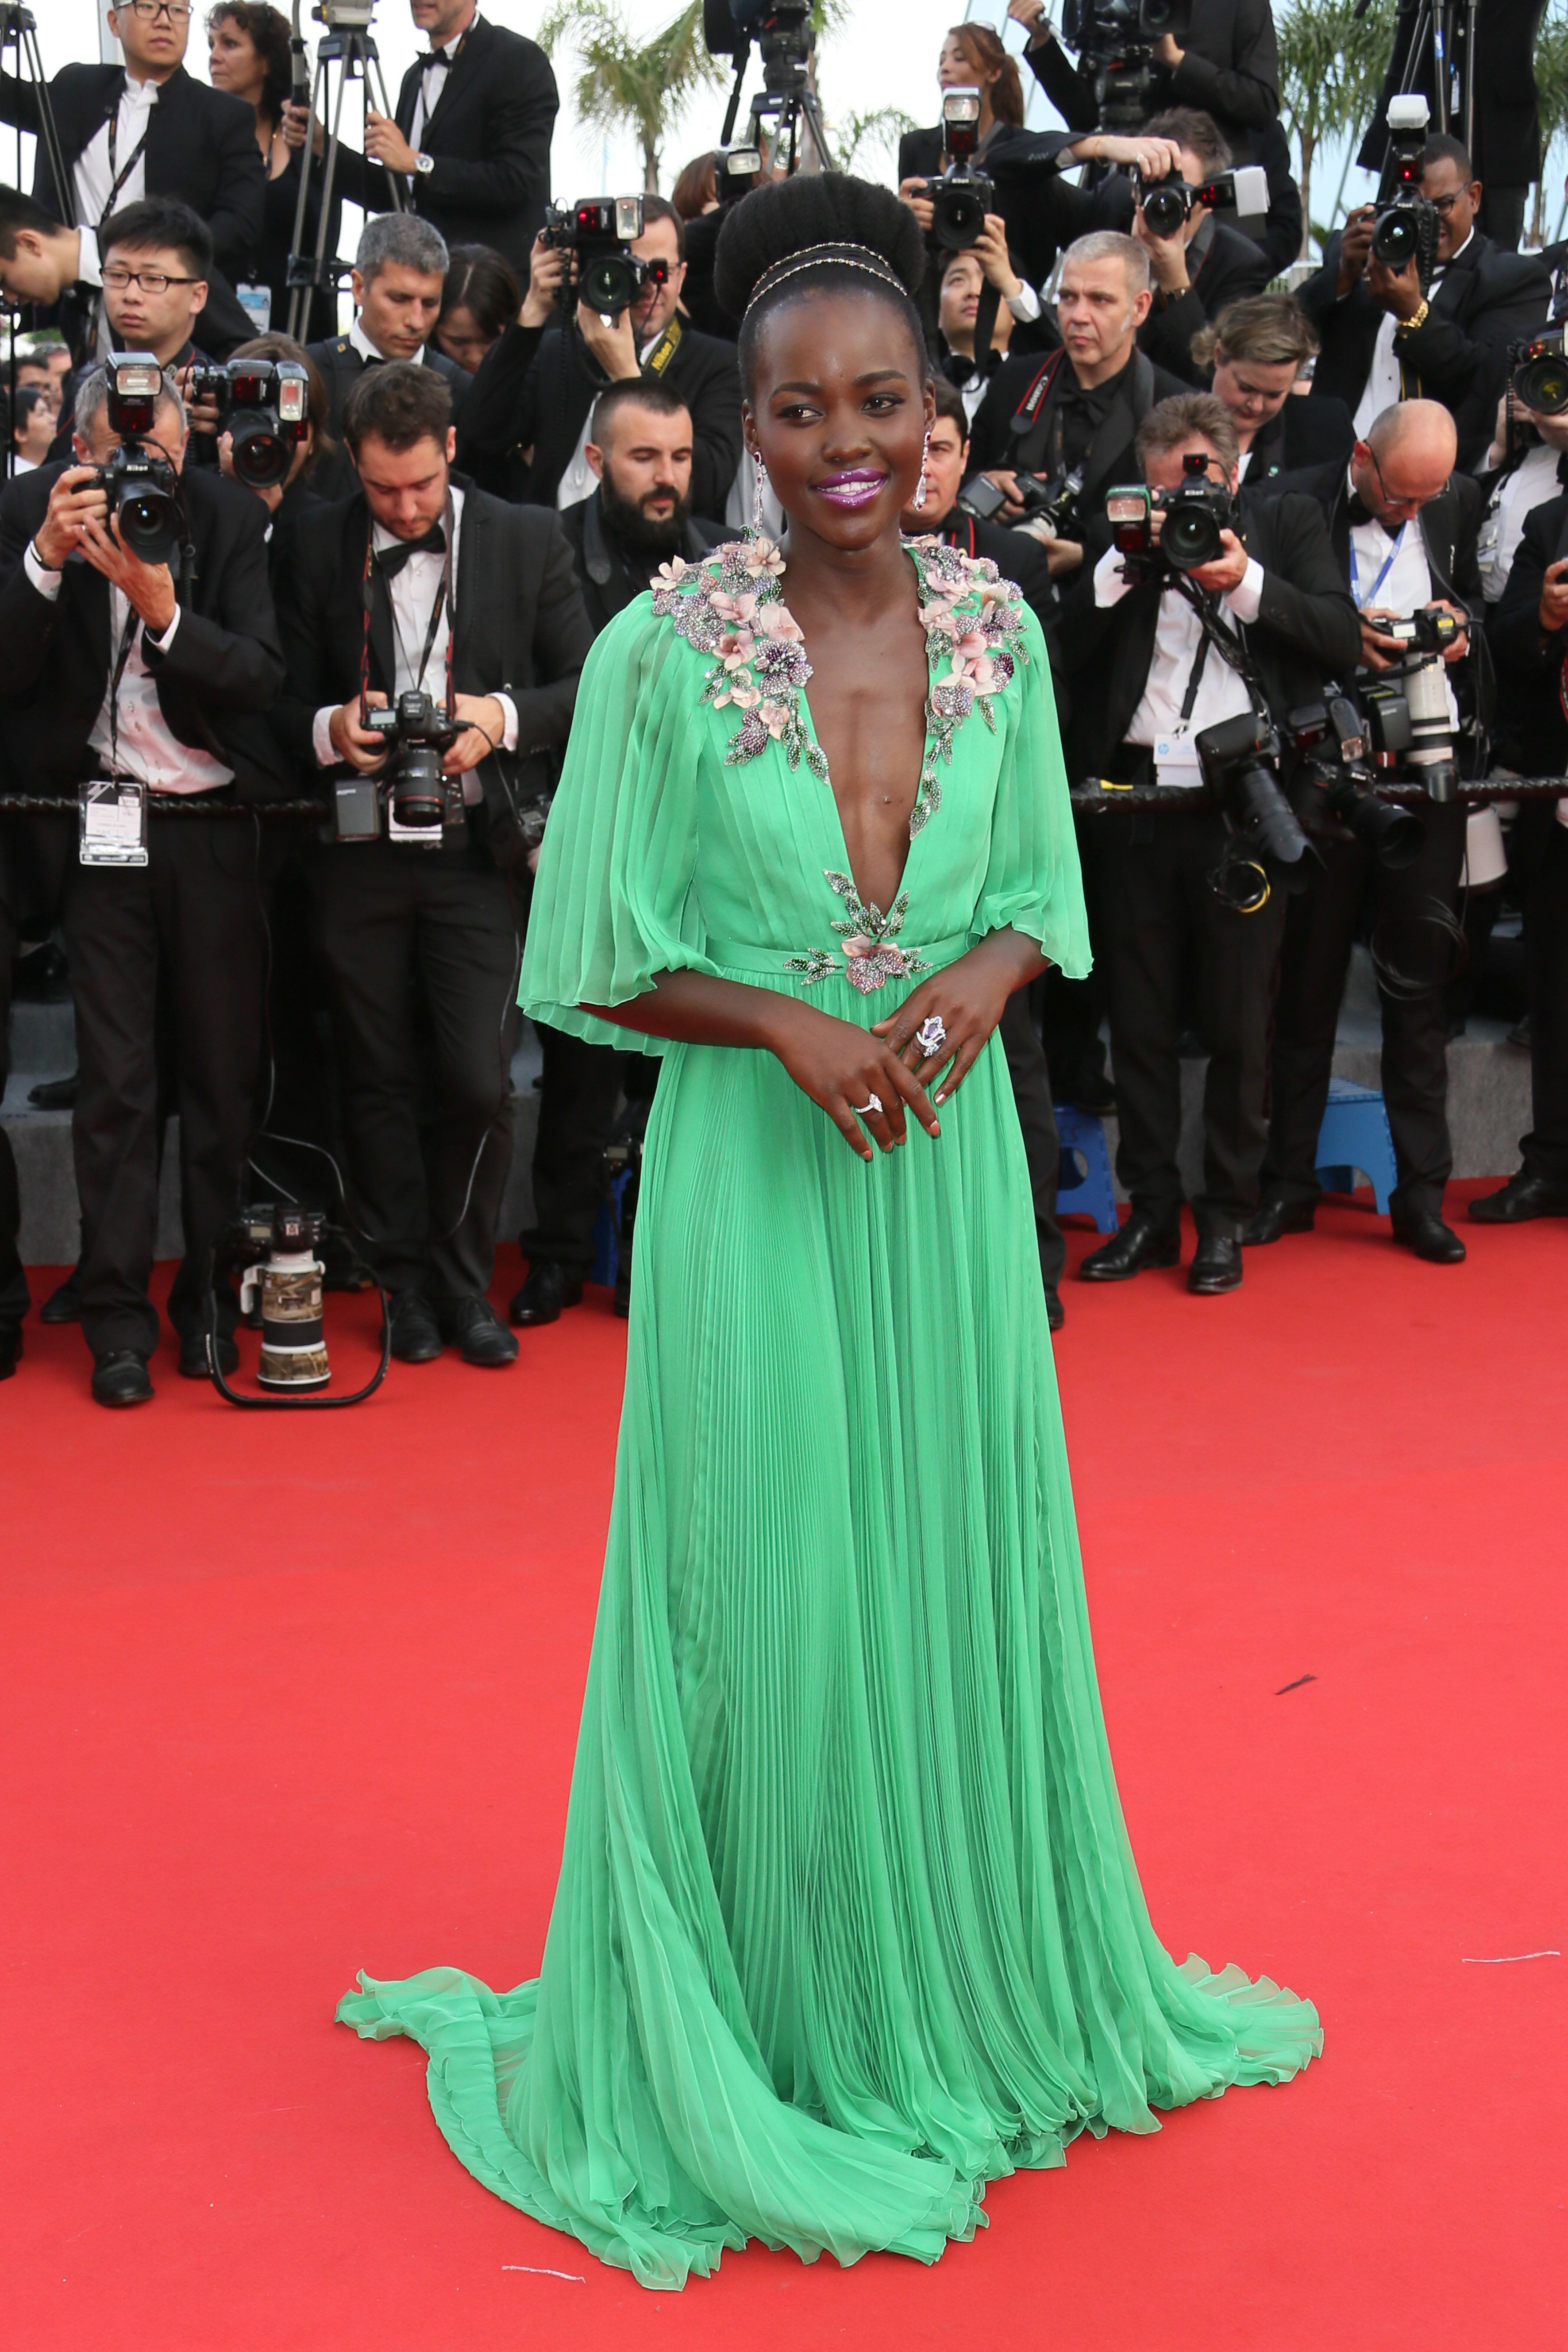 CANNES, FRANCE - MAY 13:  Lupita Nyong'o attends the opening ceremony and 'La Tete Haute' ('Standing Tall') premiere during the 68th annual Cannes Film Festival on May 13, 2015 in Cannes, France.  (Photo by Tony Barson/FilmMagic)